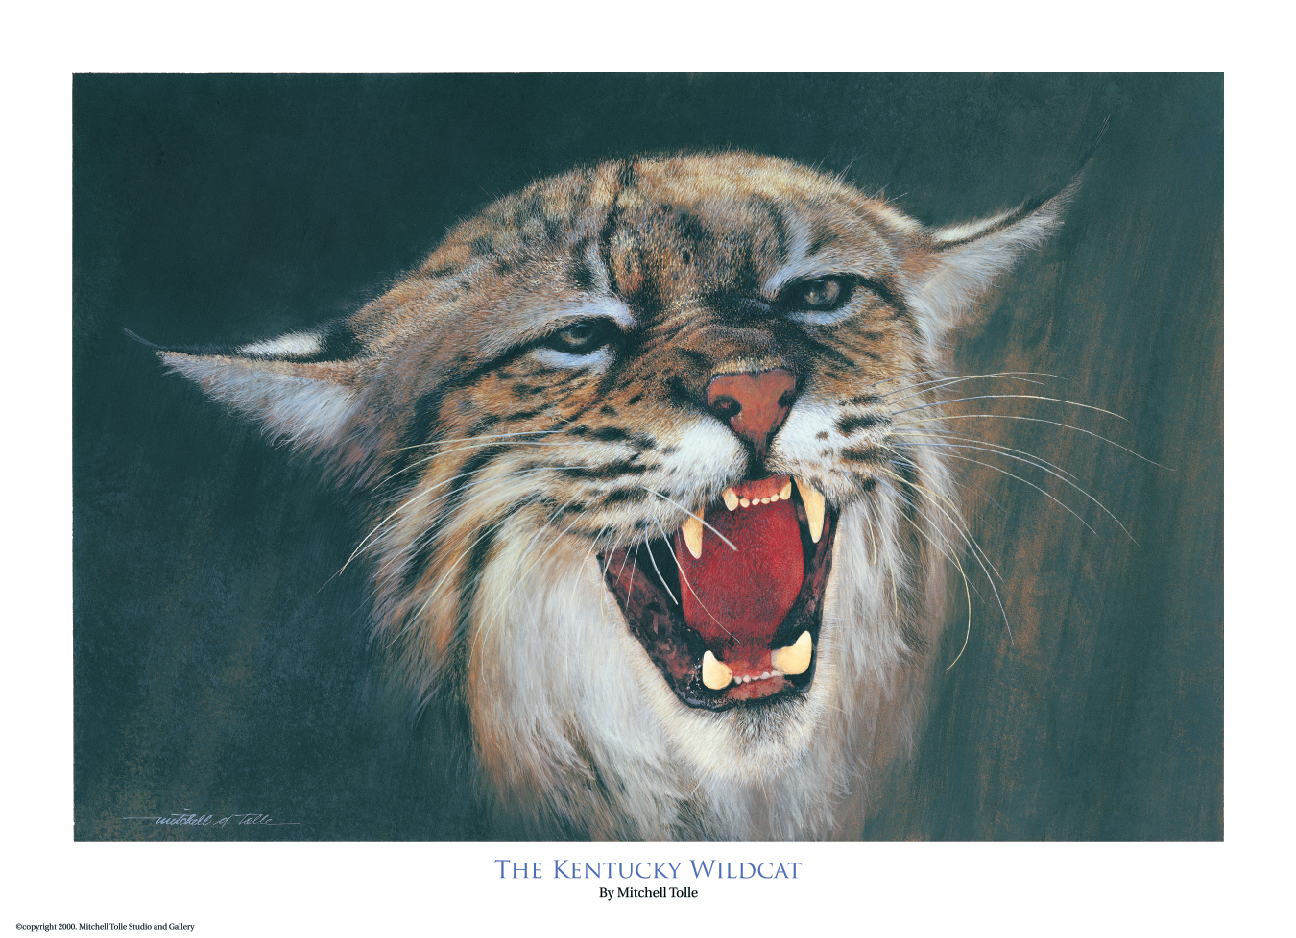 1296x938 The Kentucky Wildcat Signed Only Artist Mitchell Tolle